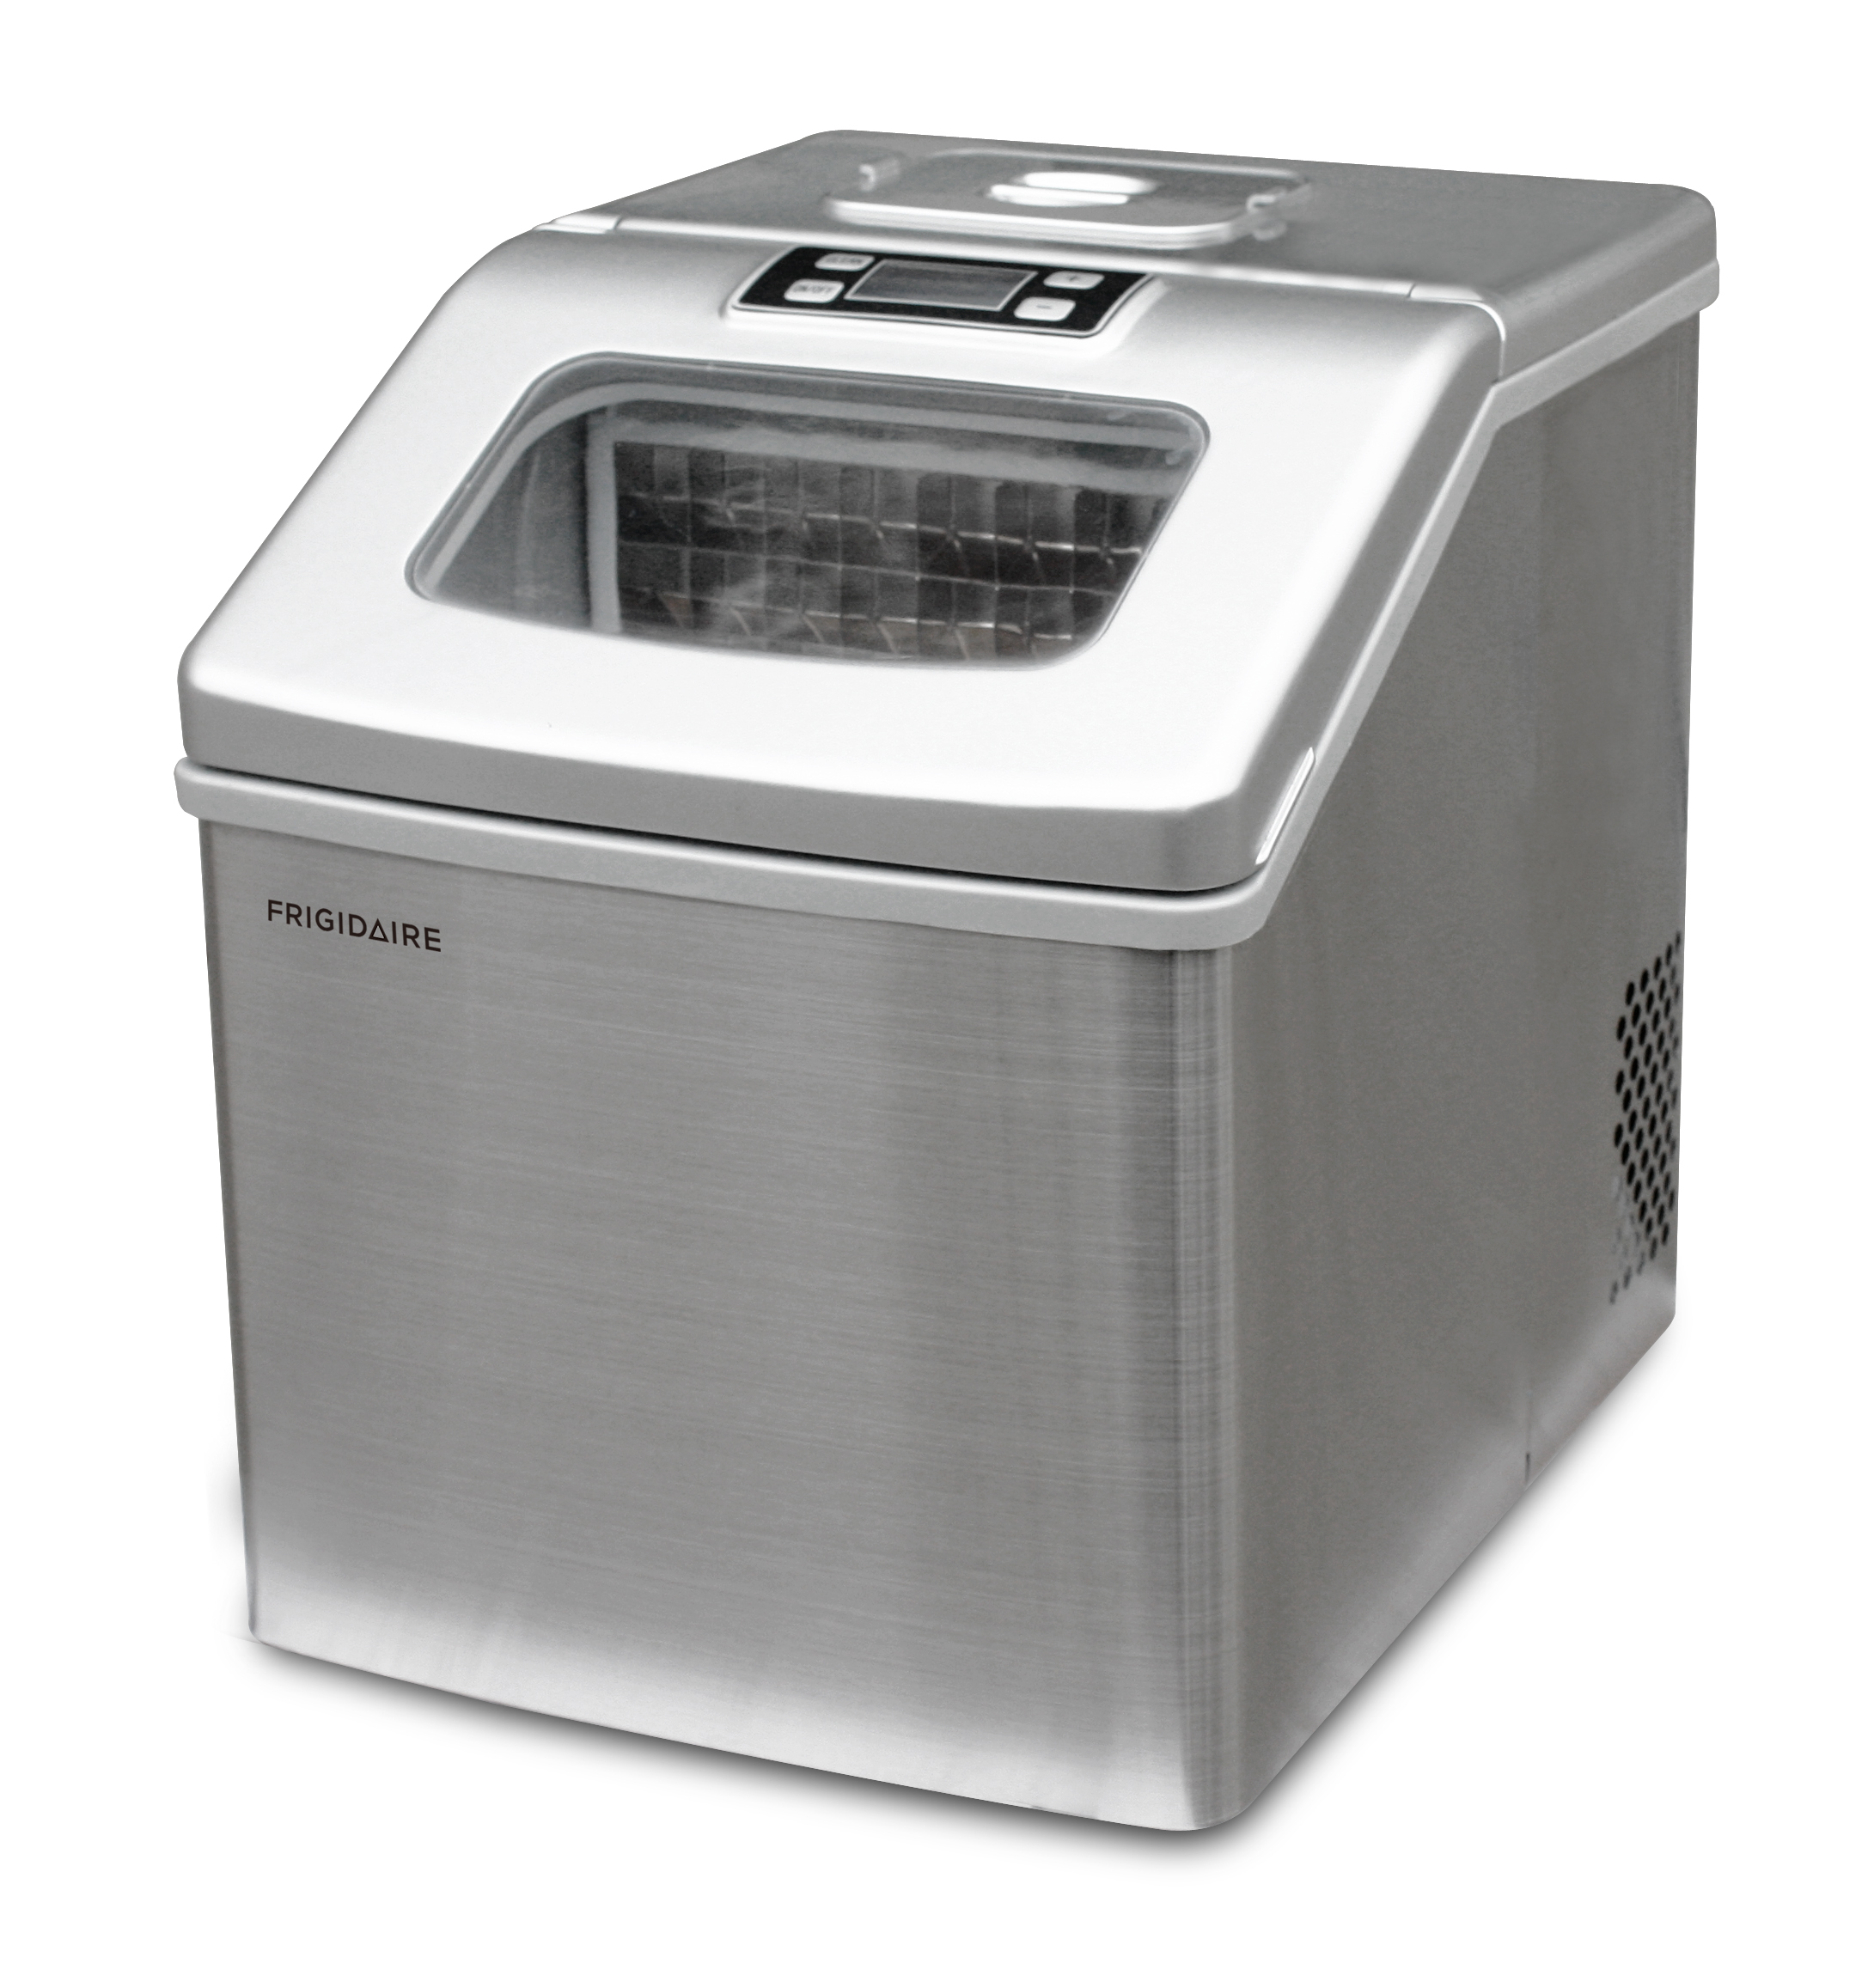 Frigidaire 40 lbs Countertop Clear Square Ice Maker, Stainless Steel